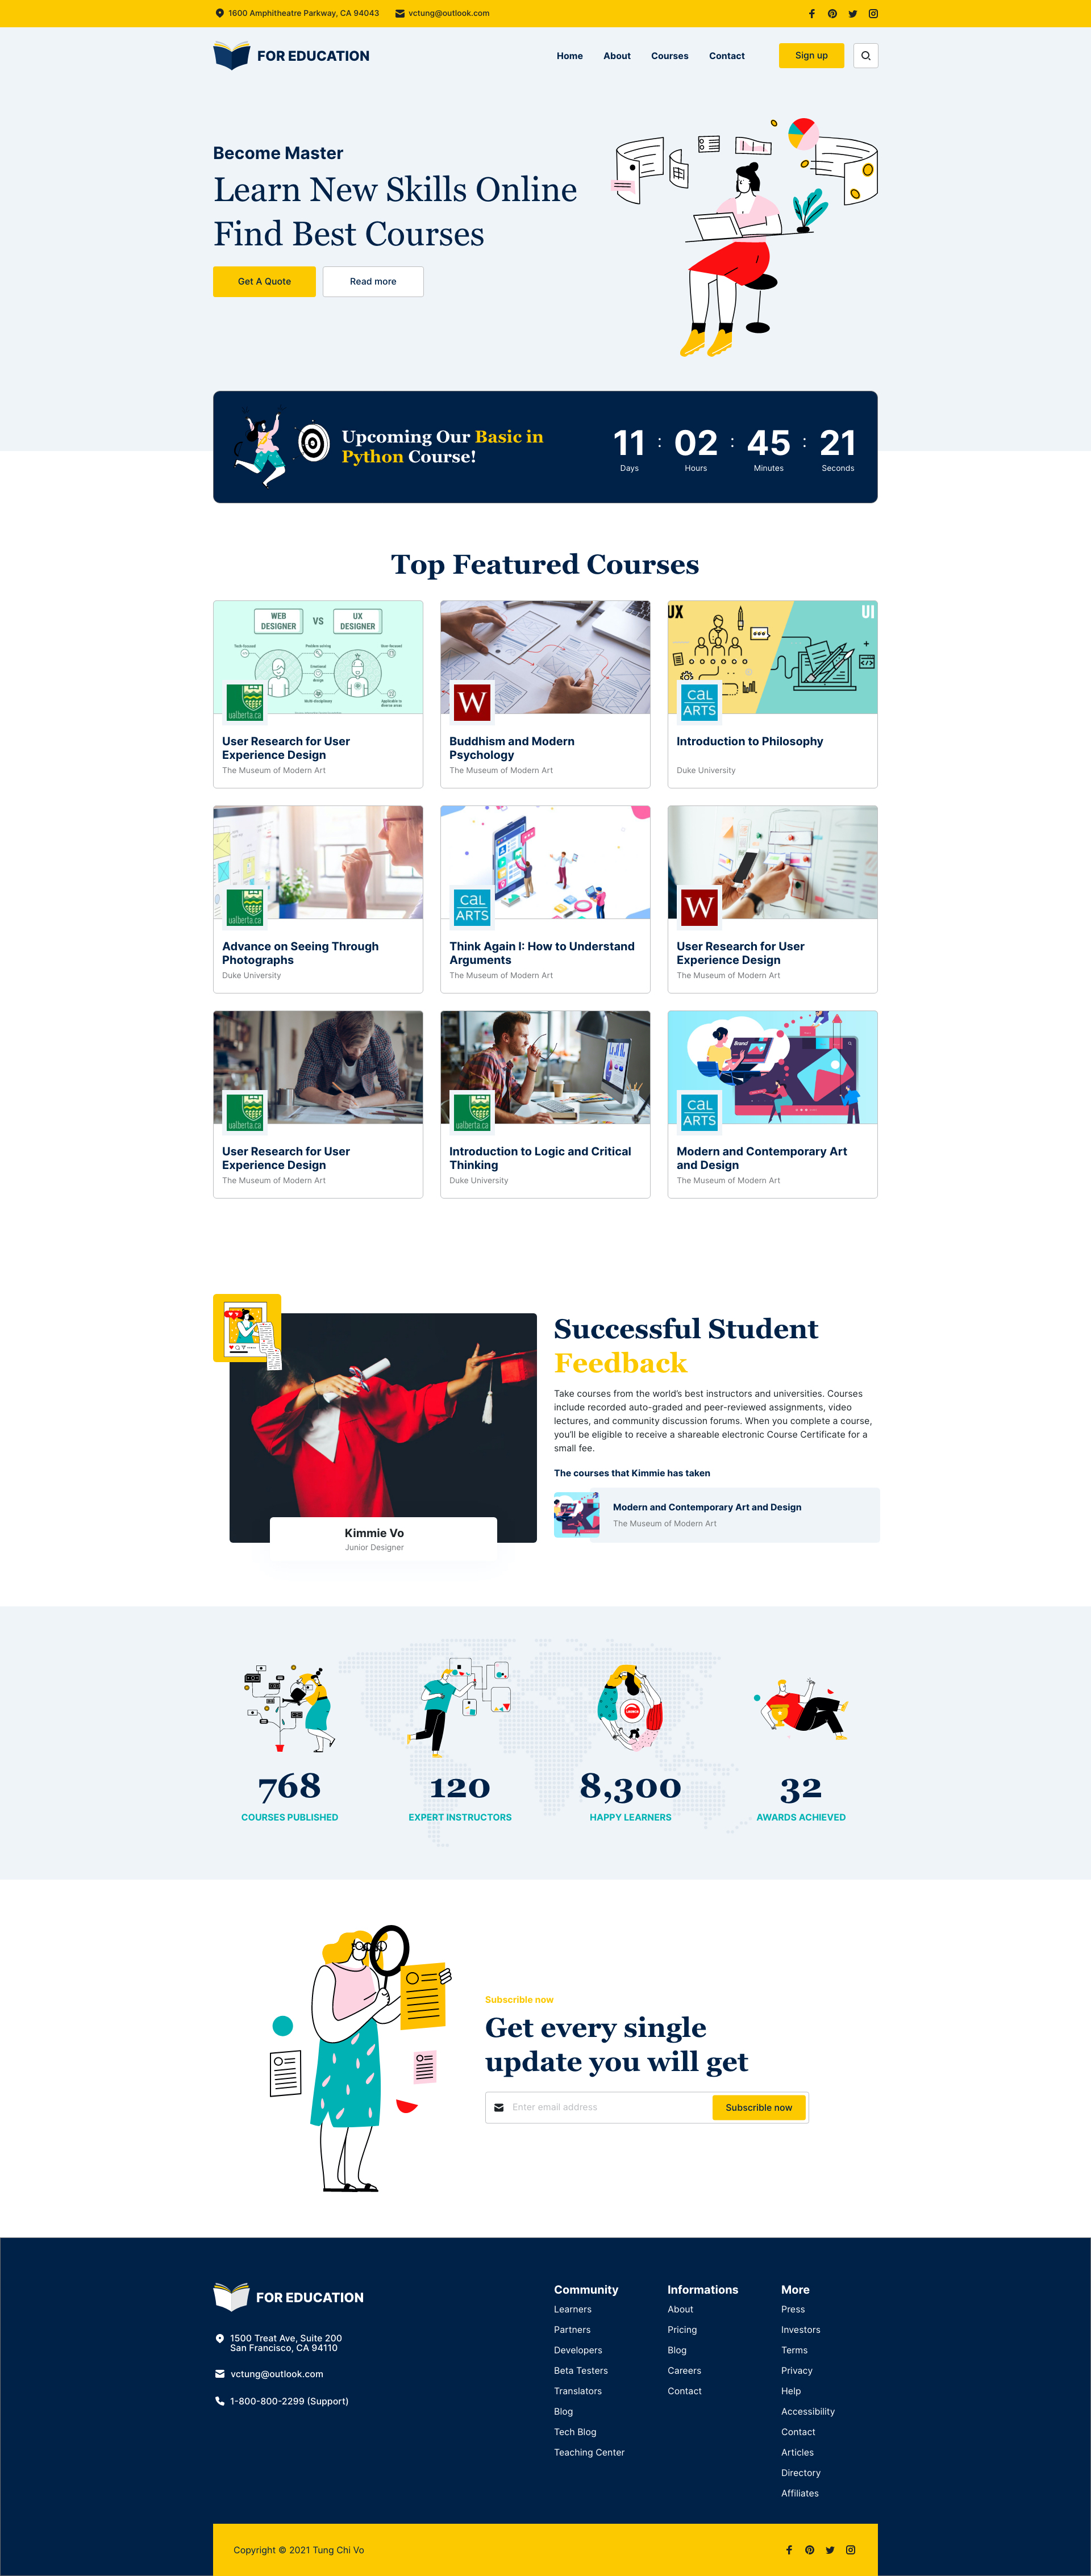 Little Squirrel - Free Landing Page for Adobe XD - Elegant and clean landing page templates for Education / Online learning projects